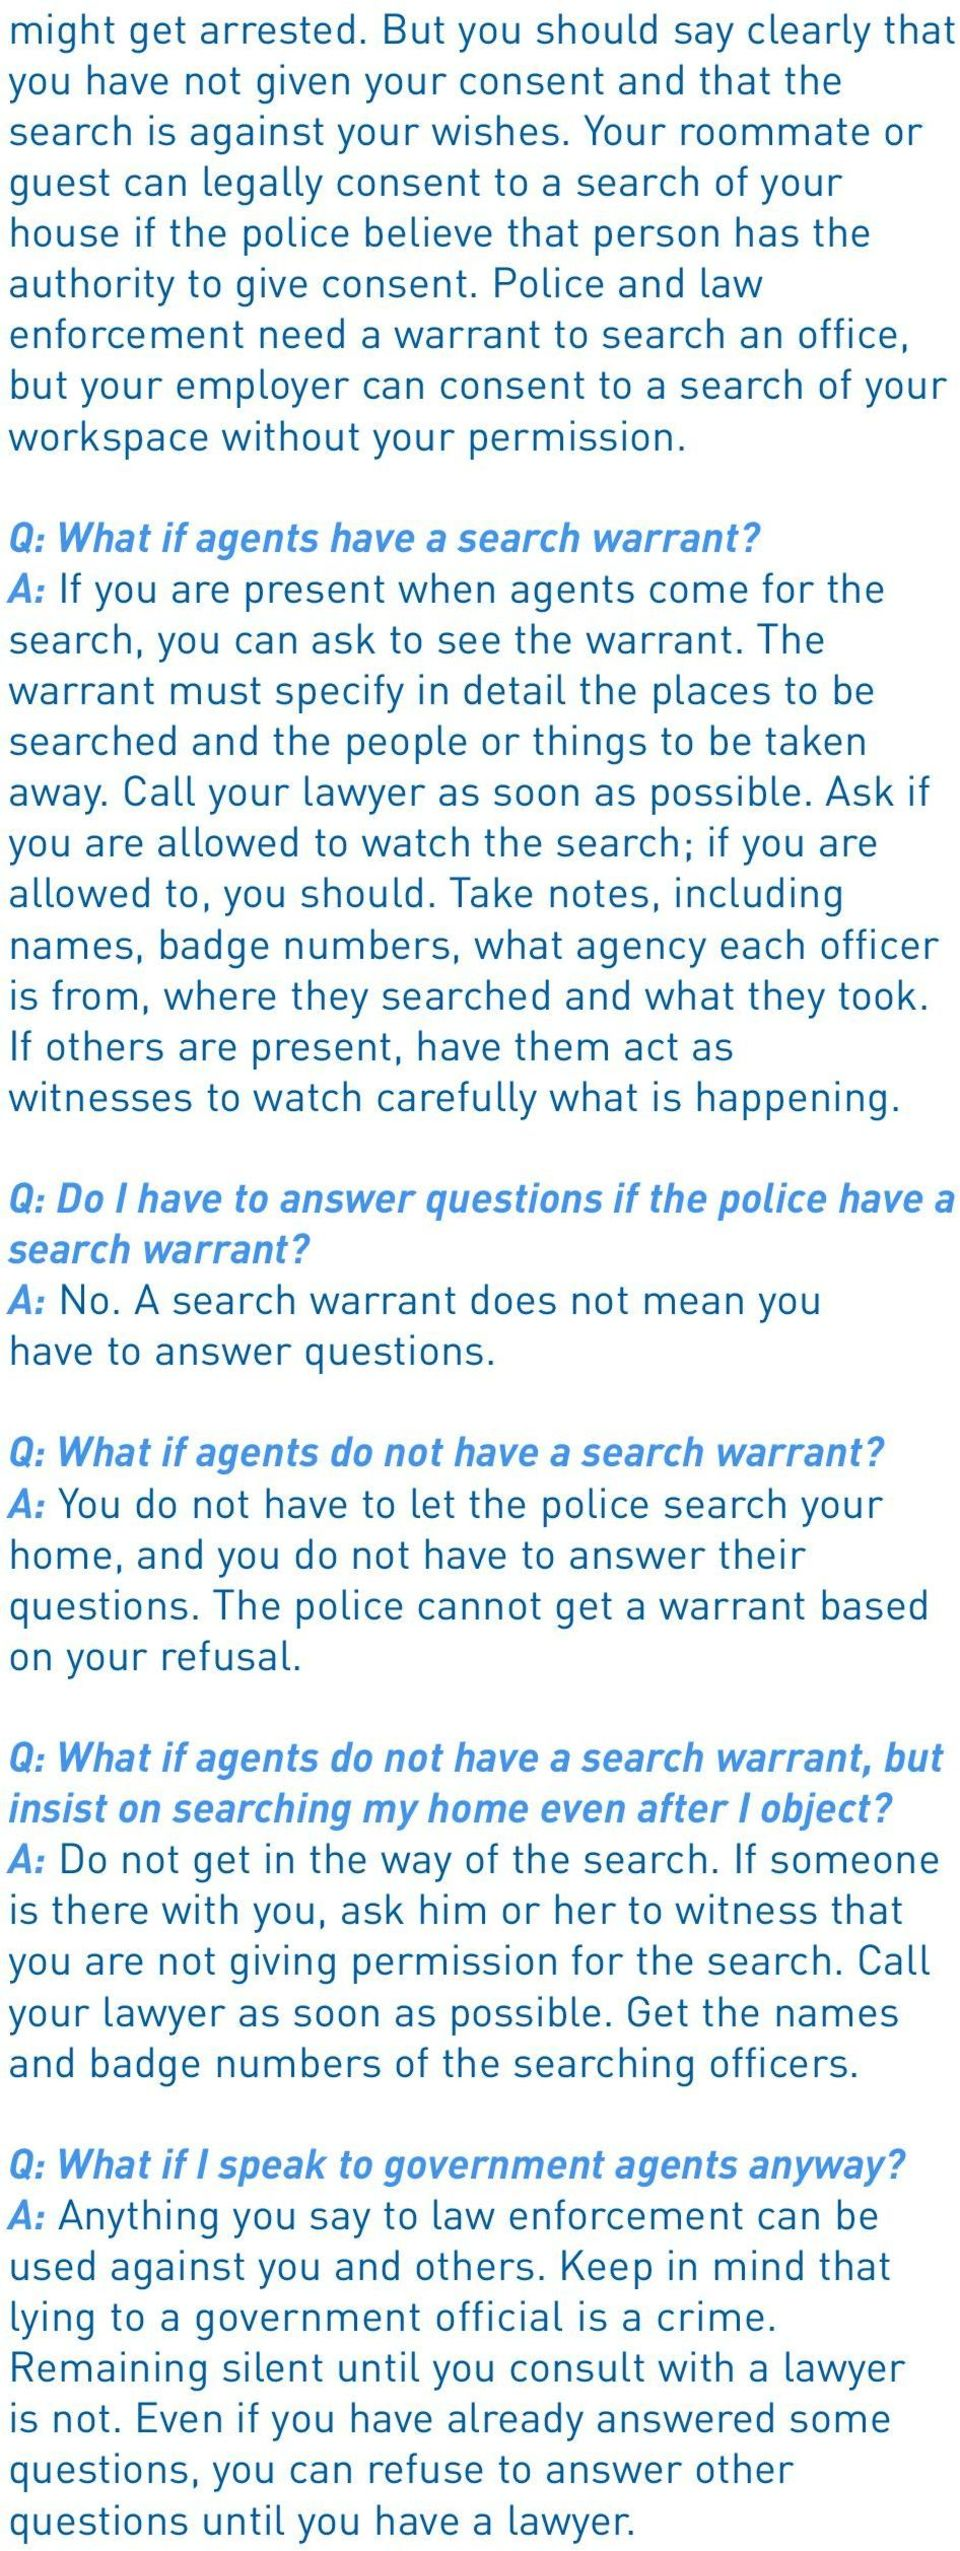 Police and law enforcement need a warrant to search an office, but your employer can consent to a search of your workspace without your permission. Q: What if agents have a search warrant?